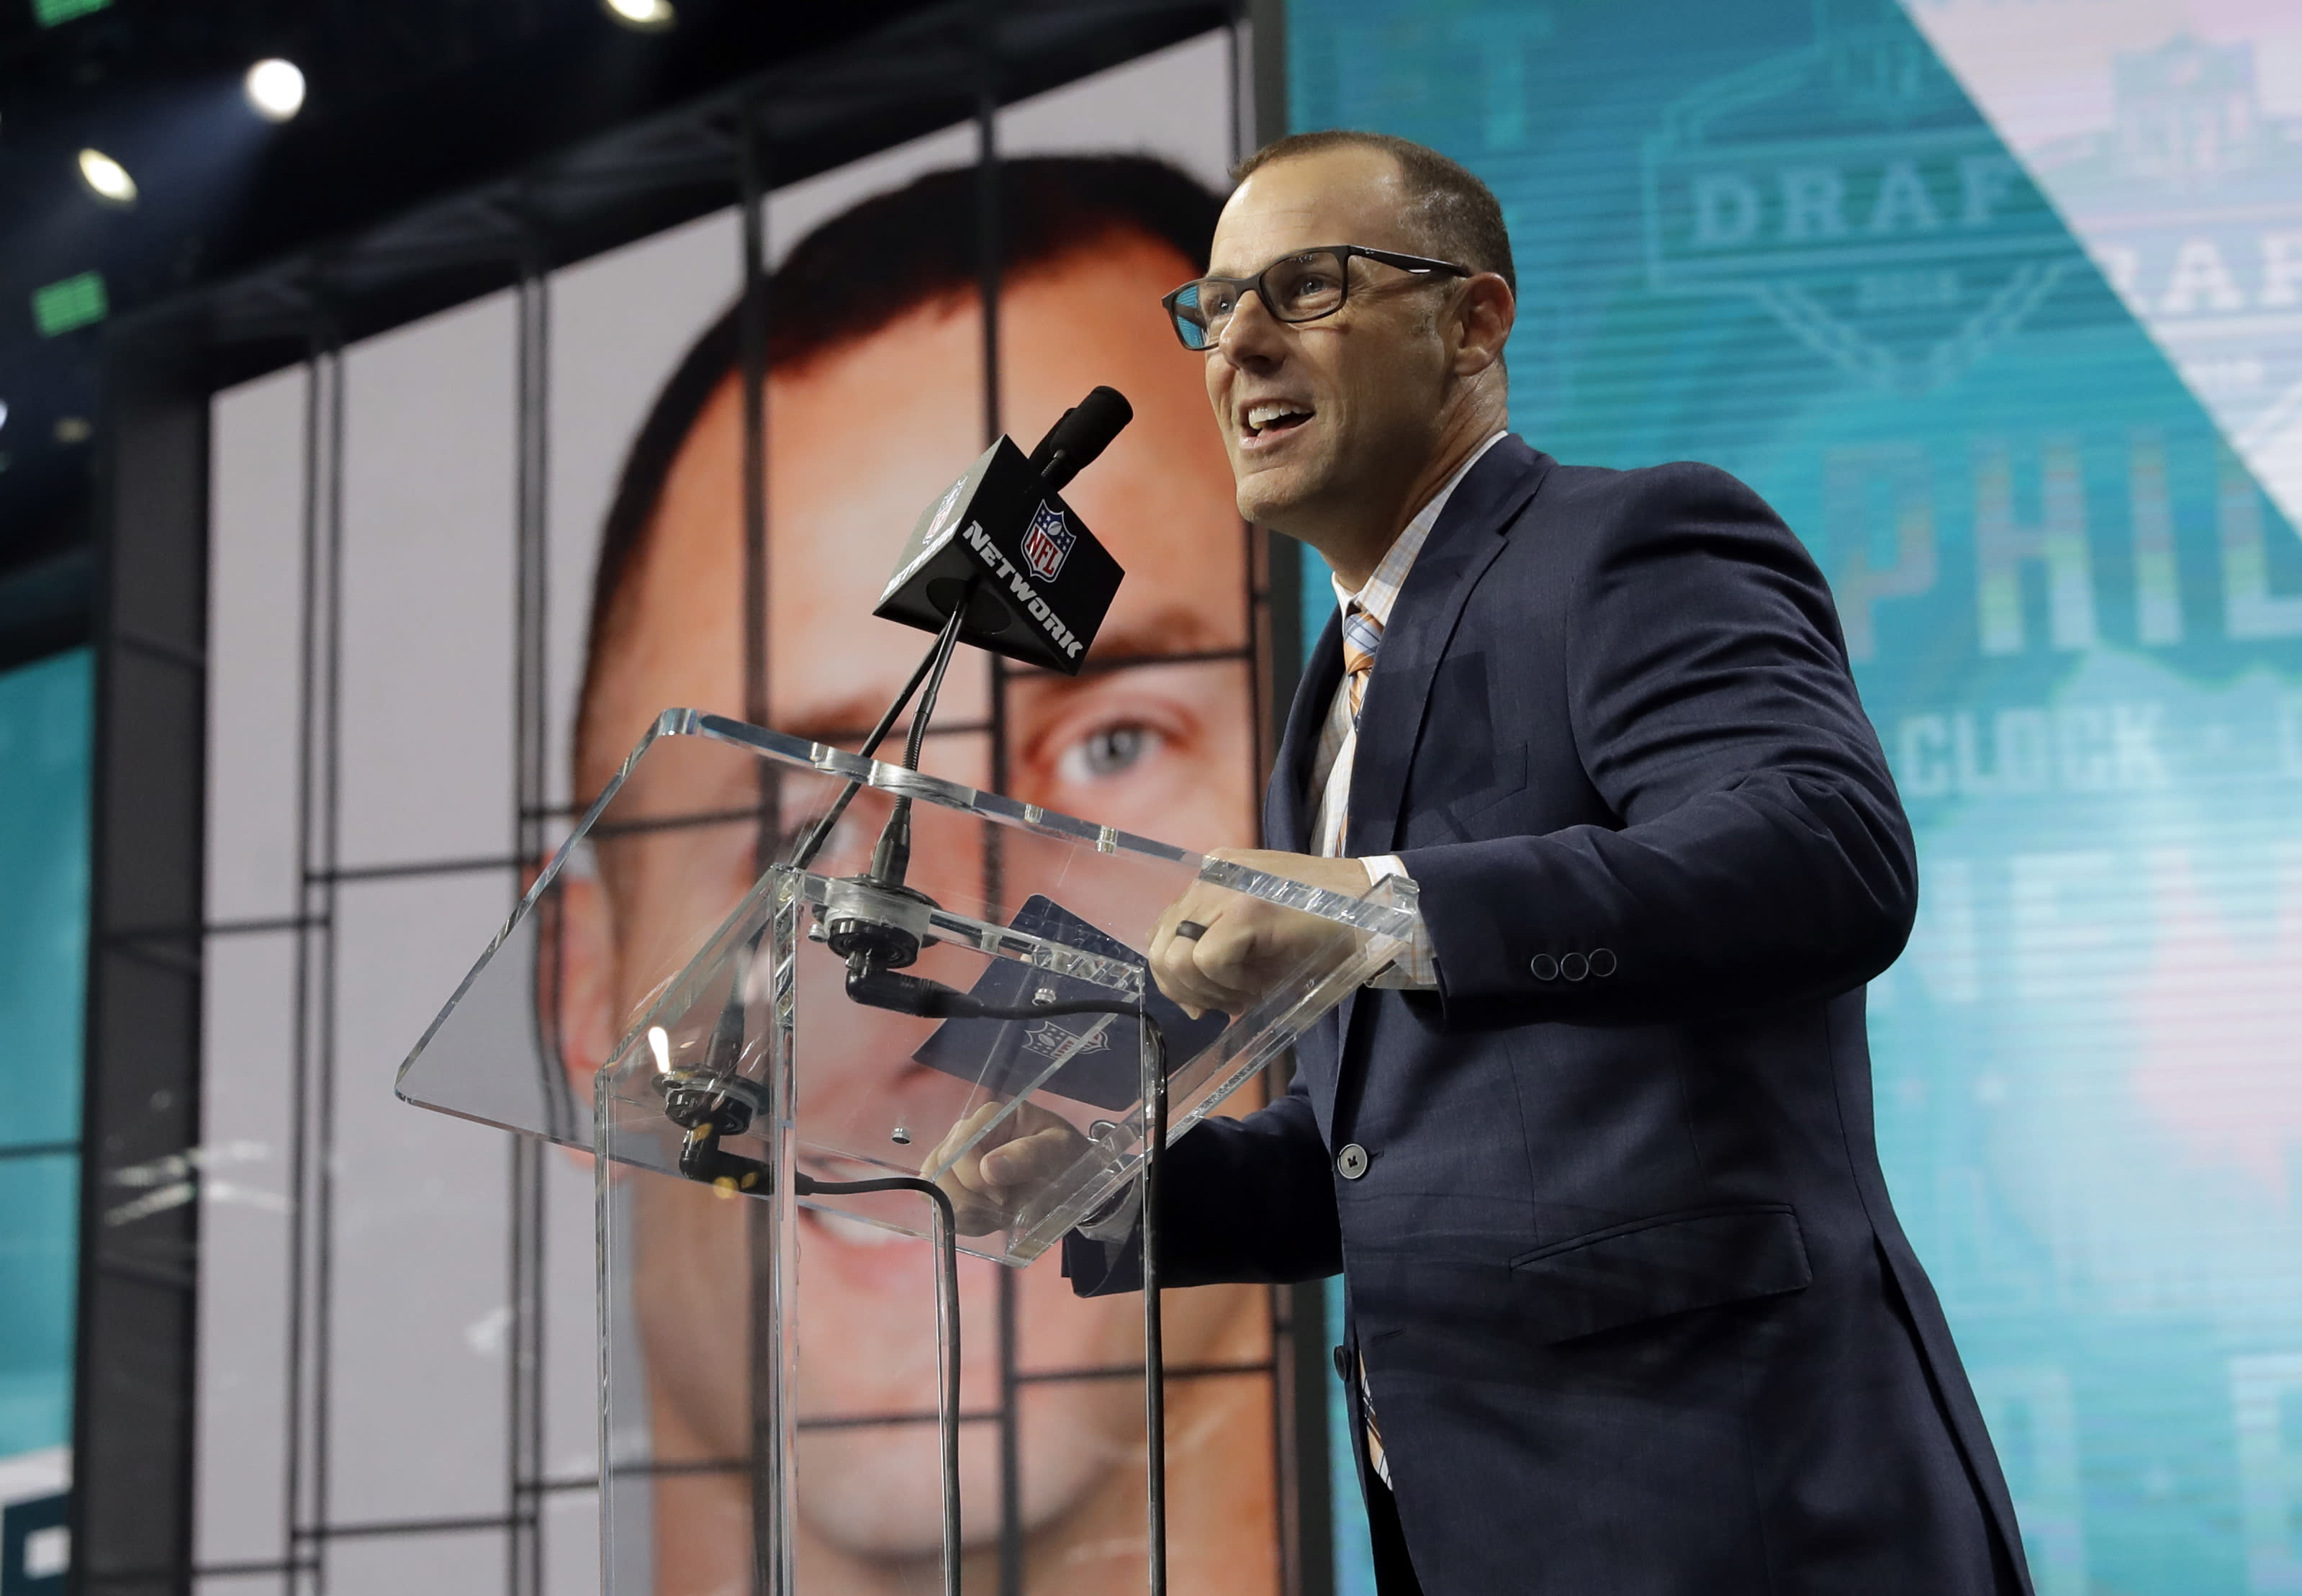 David Akers staged an epic troll of Cowboys fans while announcing Eagles pick